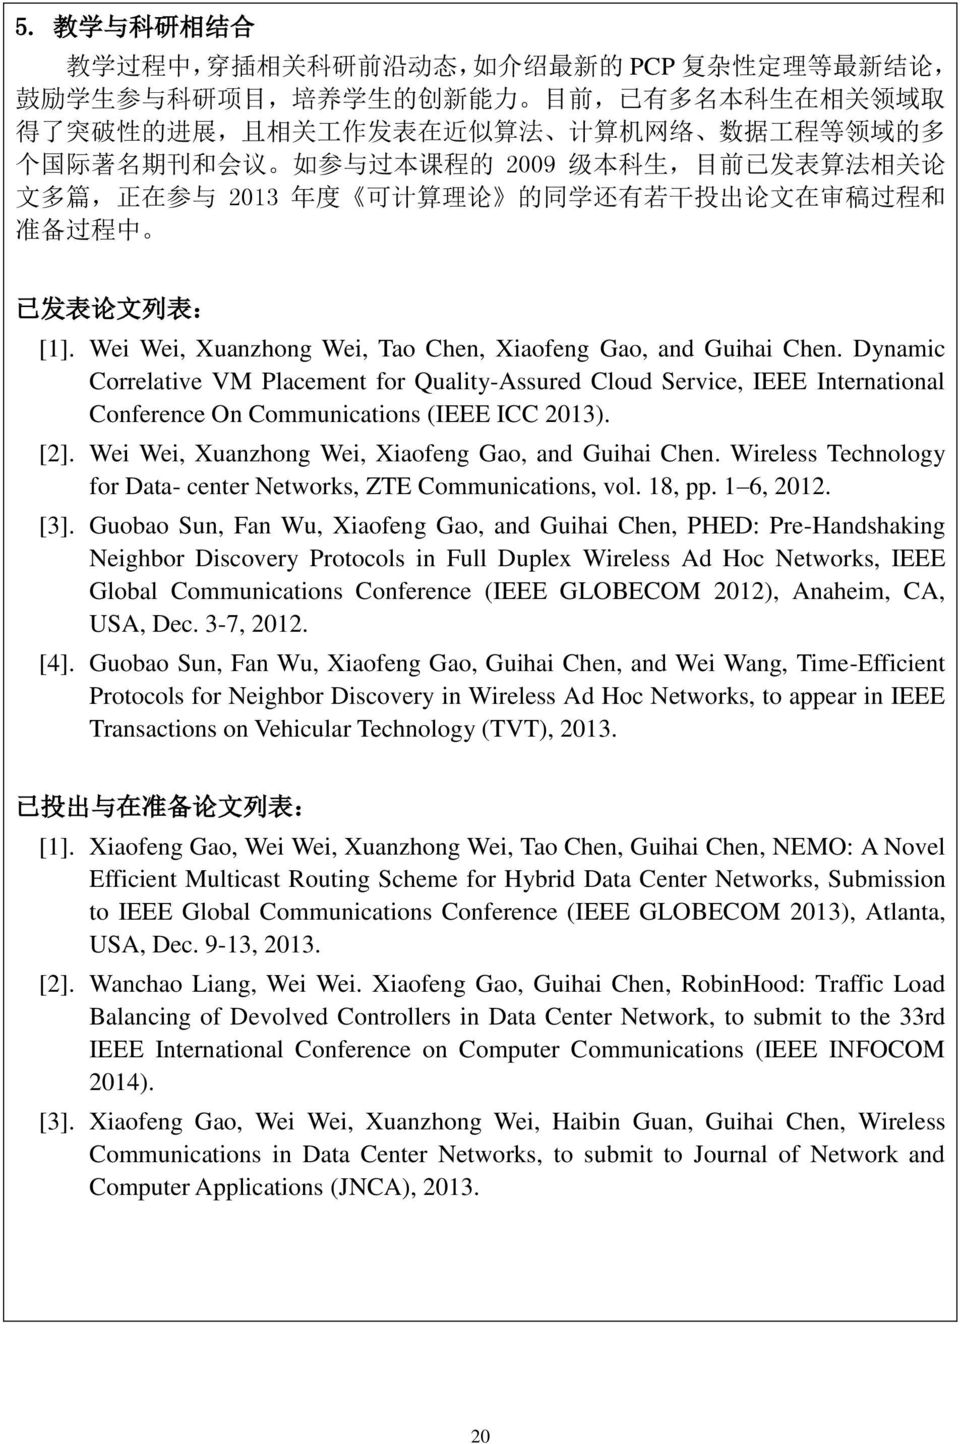 Wei Wei, Xuanzhong Wei, Tao Chen, Xiaofeng Gao, and Guihai Chen. Dynamic Correlative VM Placement for Quality-Assured Cloud Service, IEEE International Conference On Communications (IEEE ICC 2013).